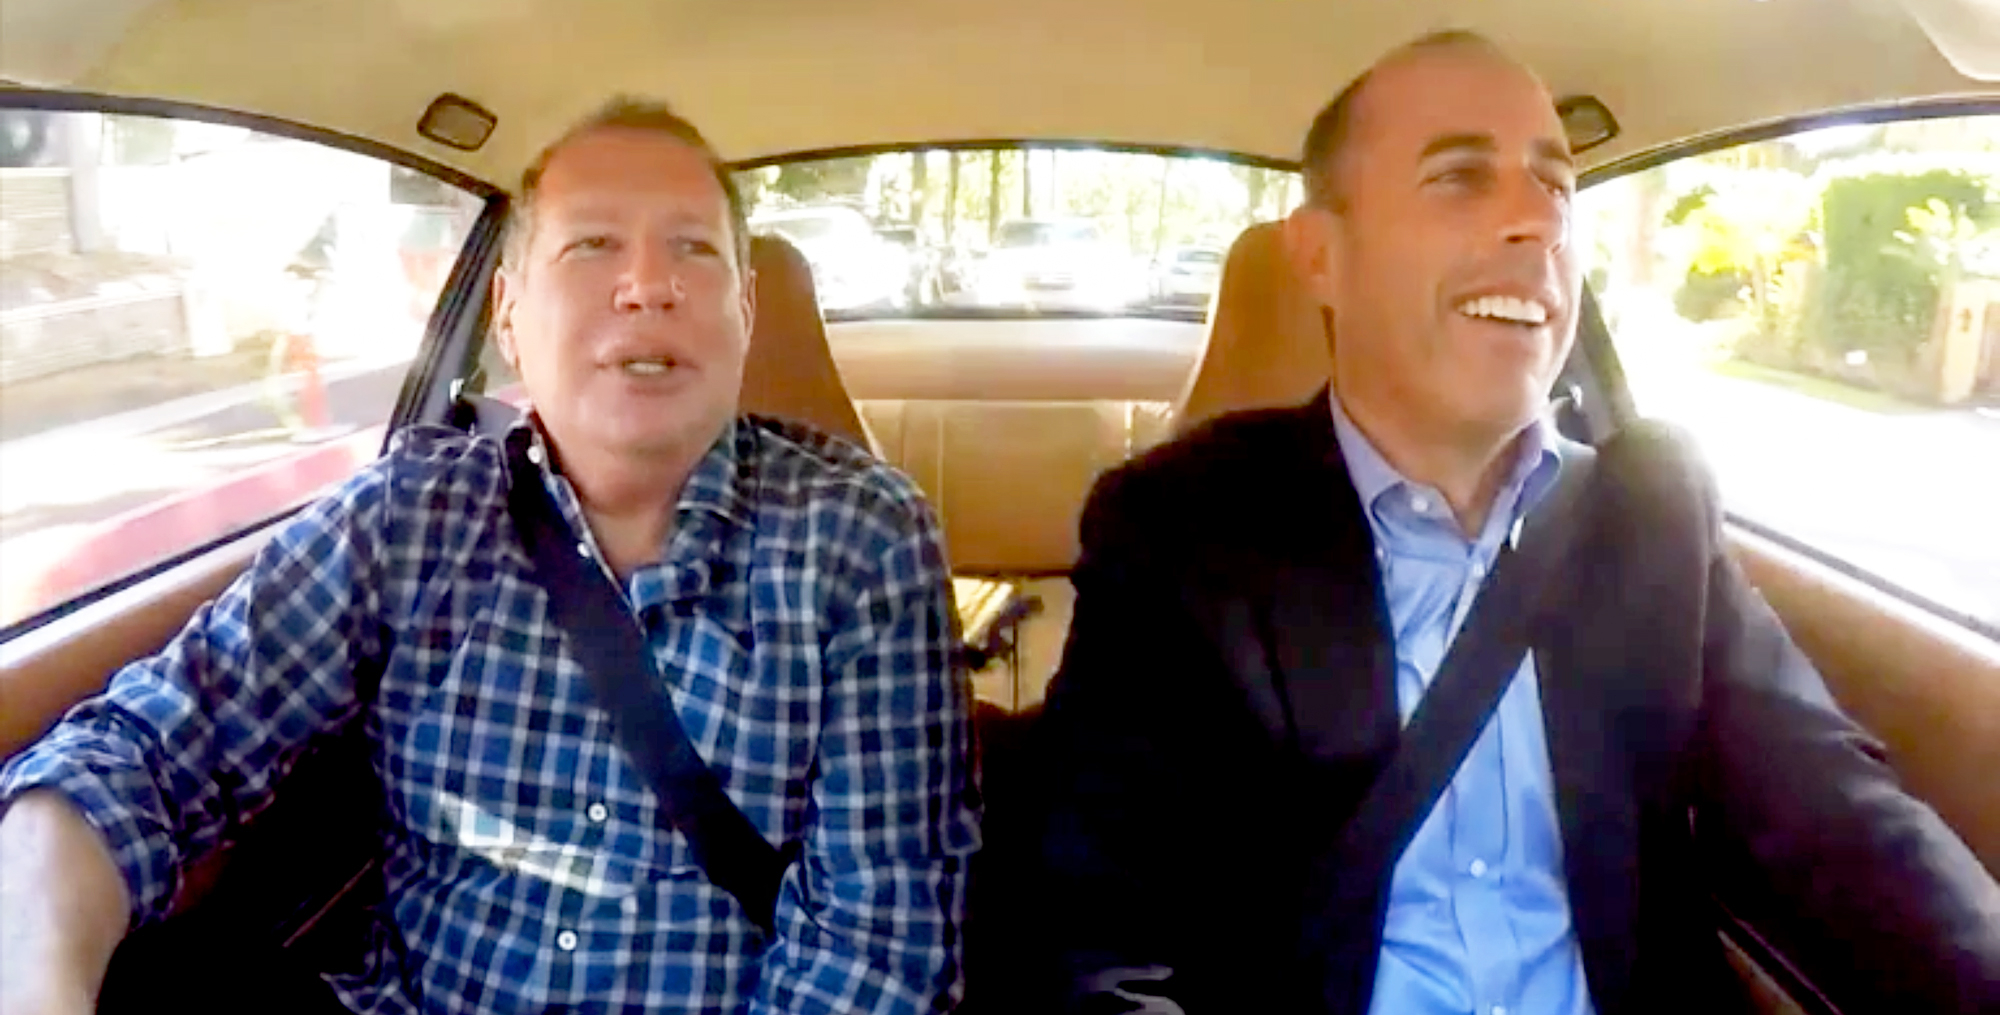 Garry Shandling and Jerry Seinfeld